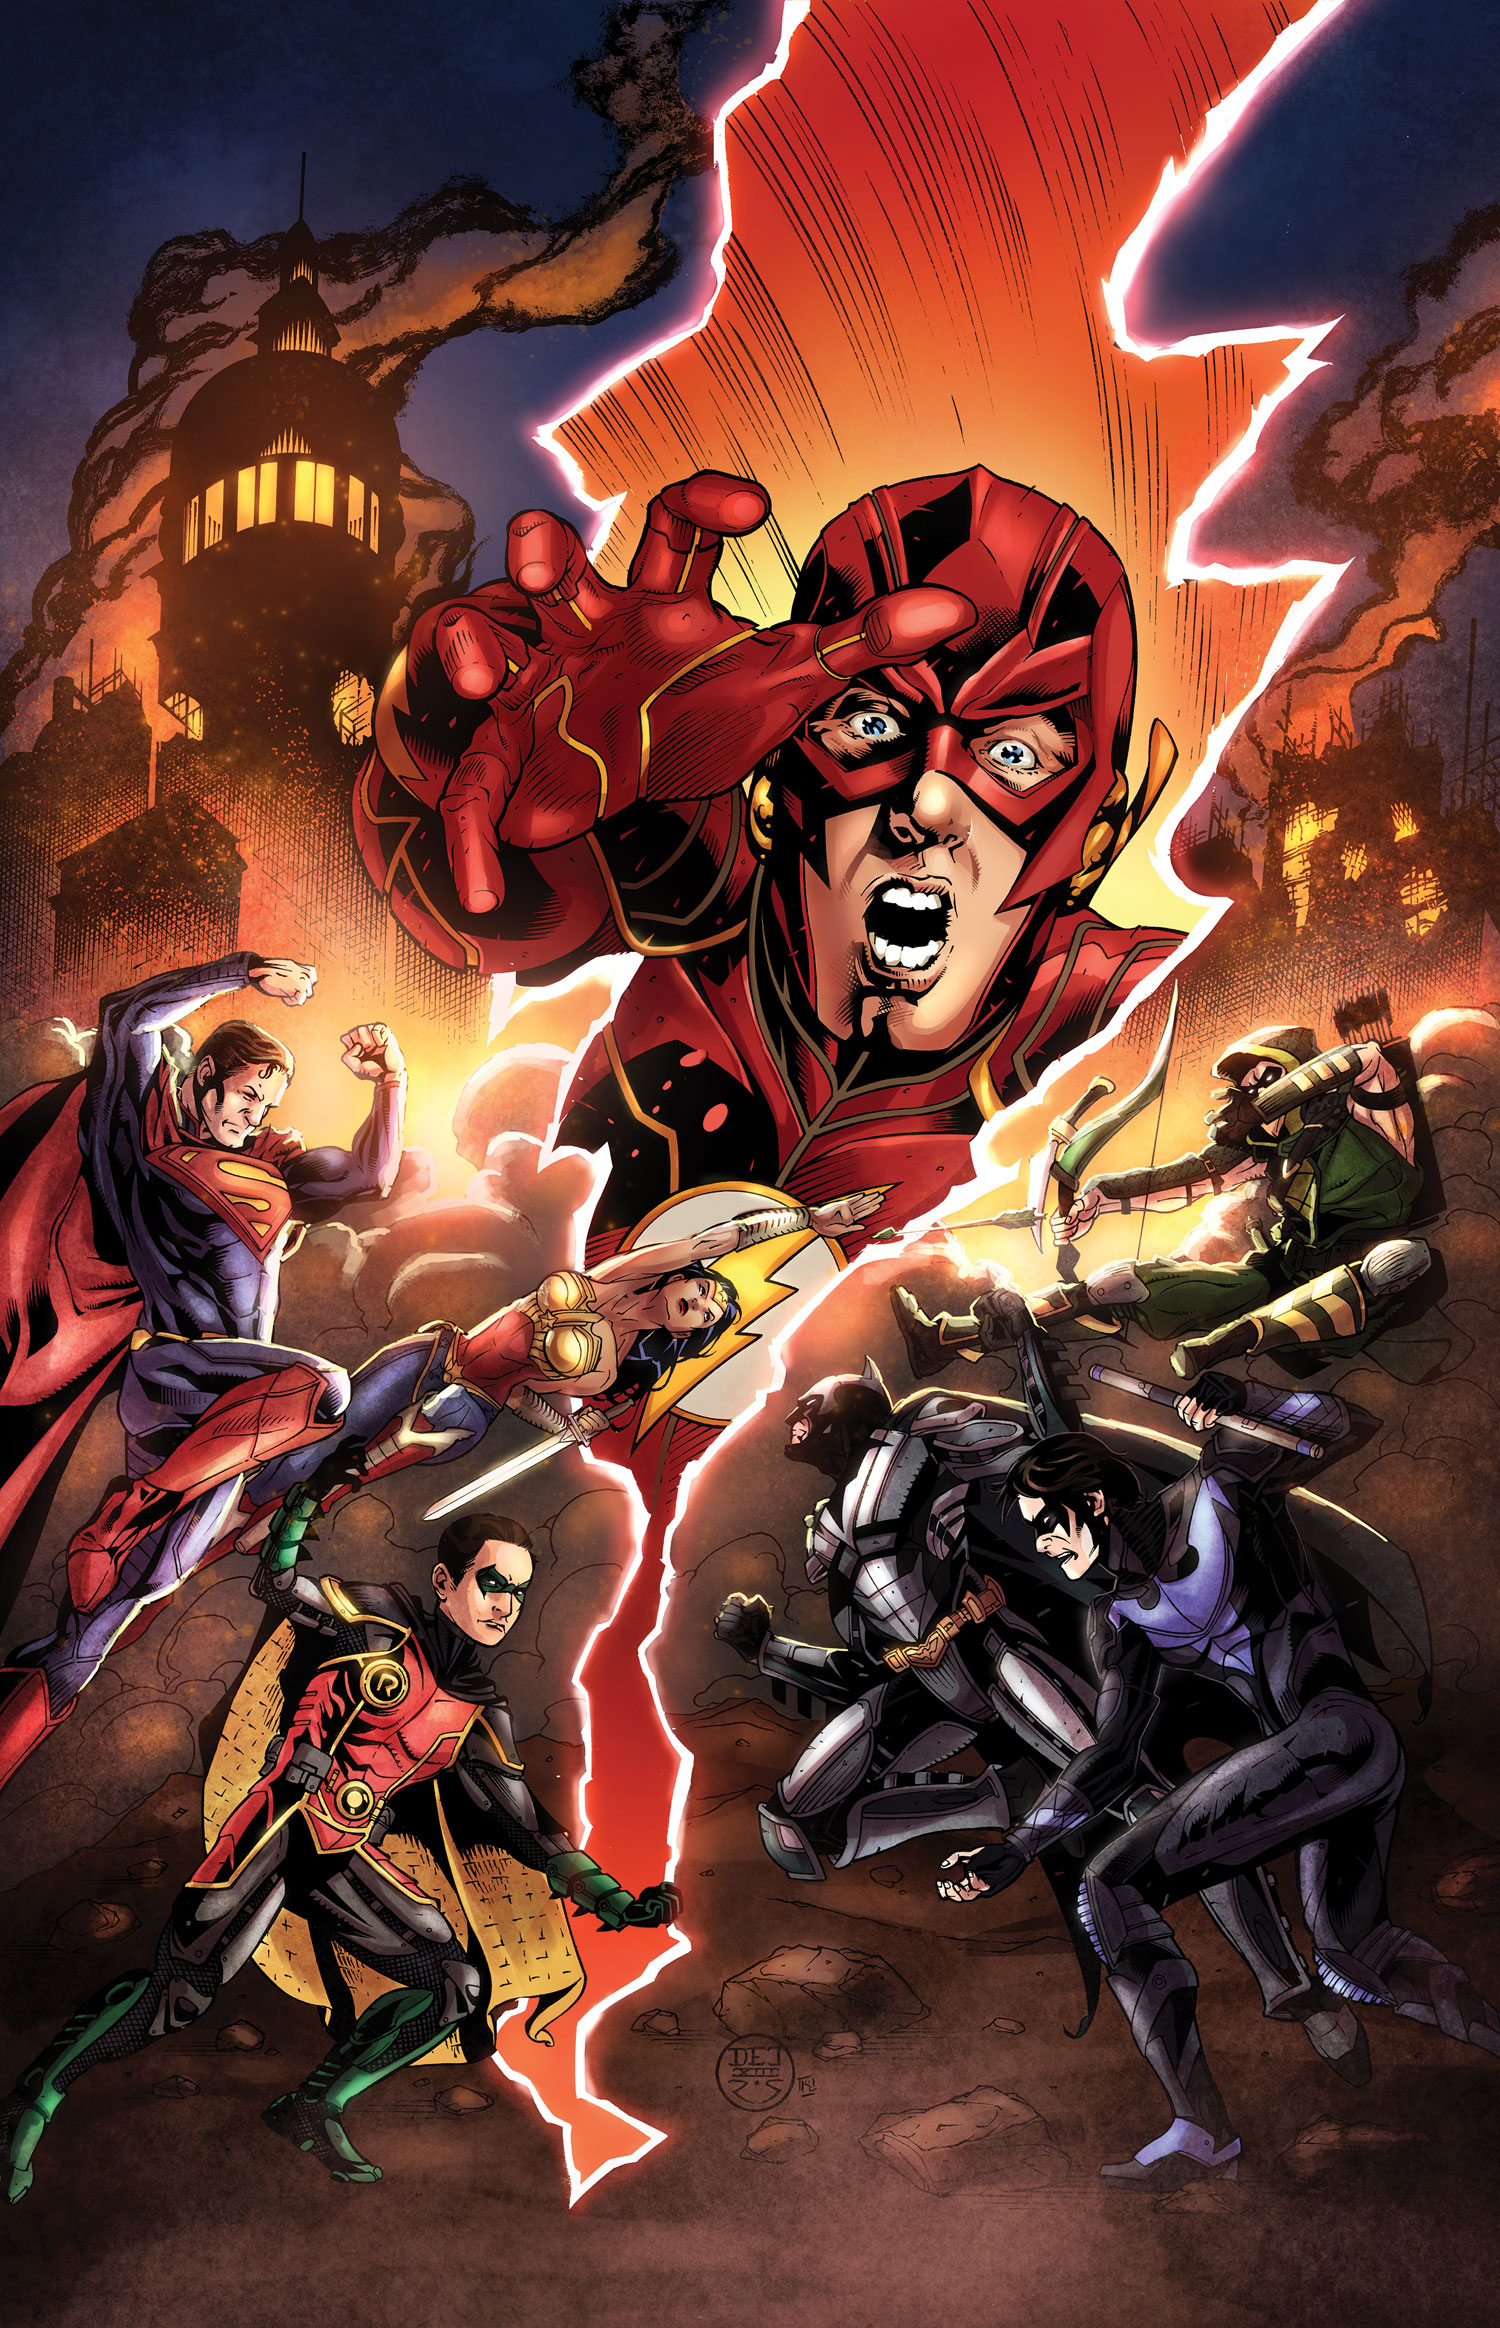 Injustice: Gods Among Us Issue 5 | Injustice:Gods Among Us Wiki | FANDOM powered by Wikia